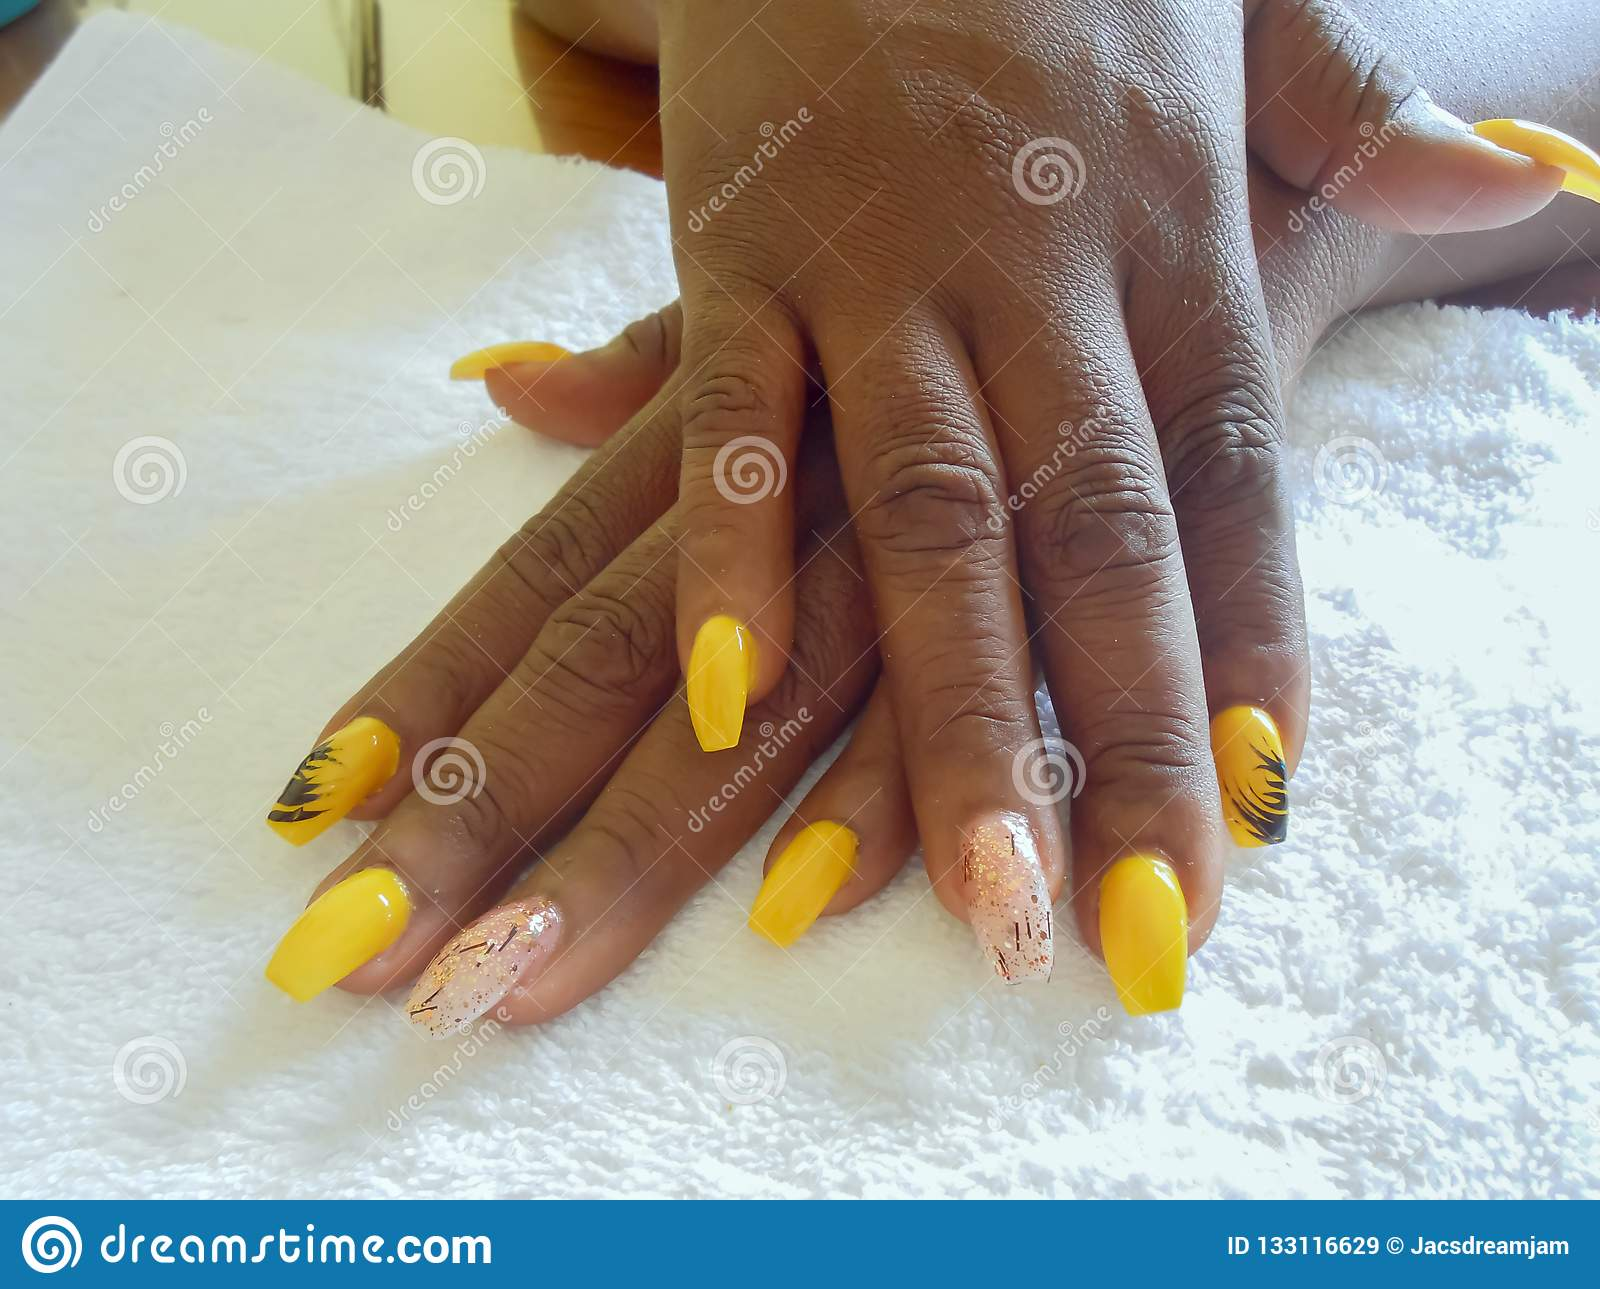 Polished Nail Extention On Display